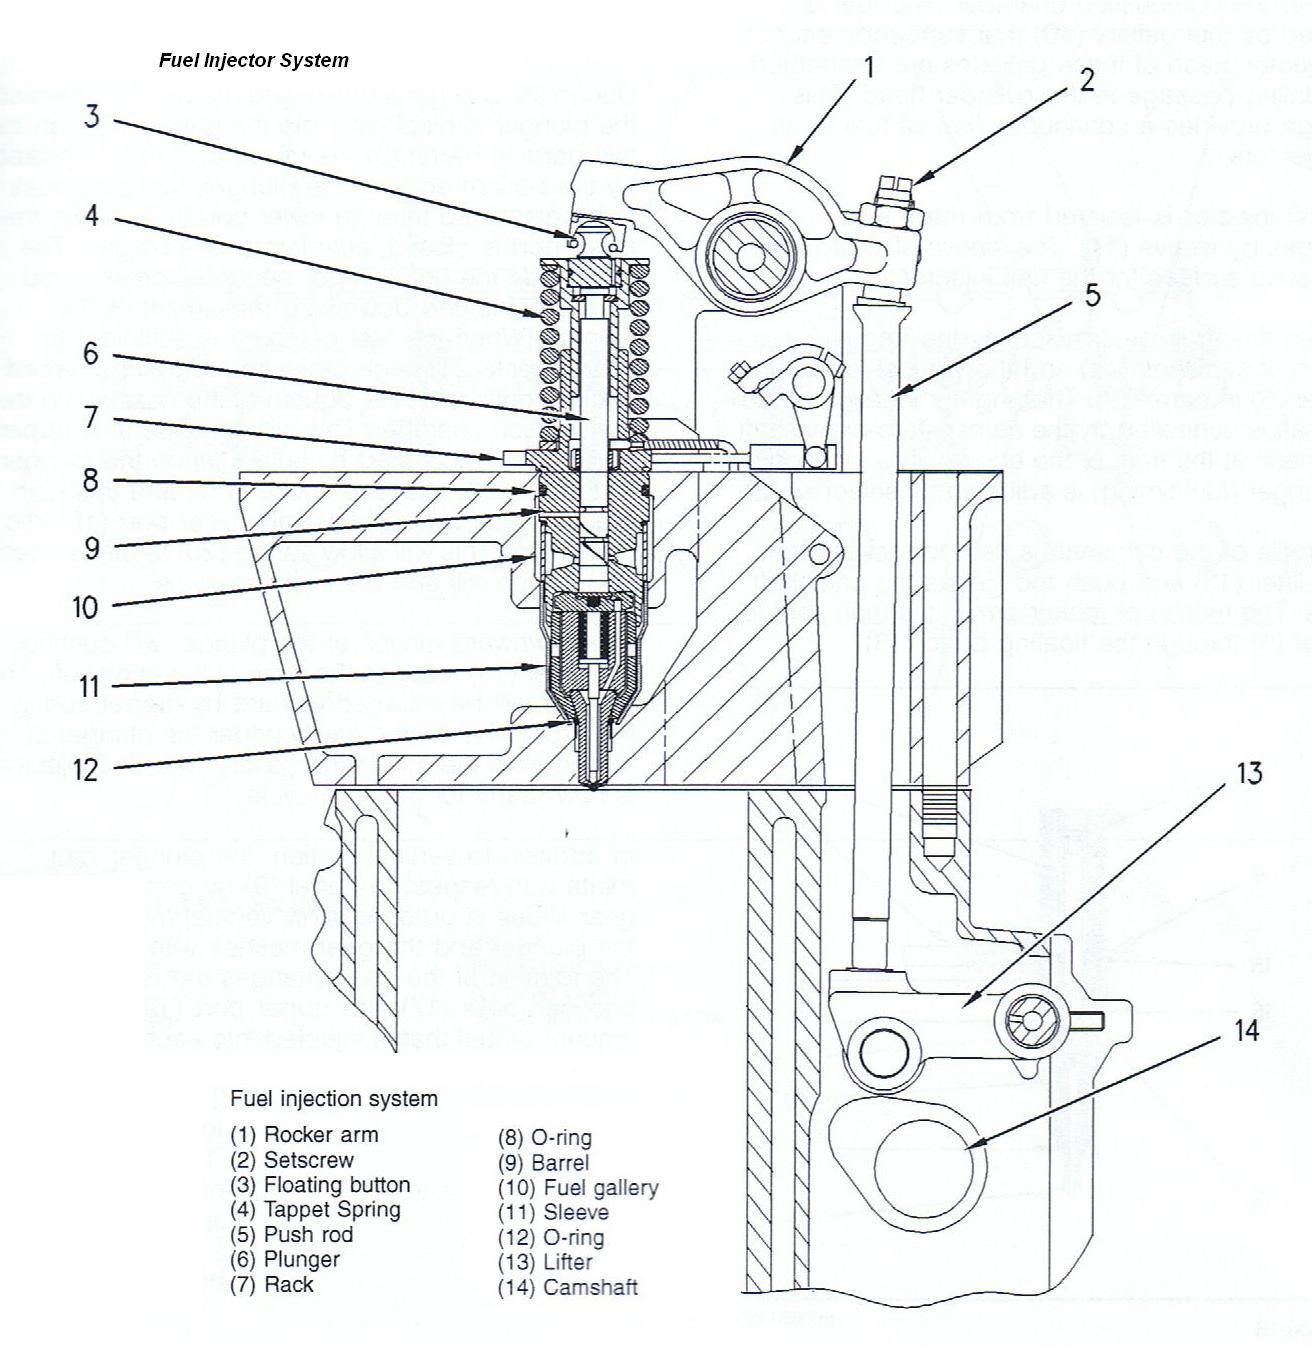 3126 Caterpillar Engine Diagram. Diagram. Wiring Diagram